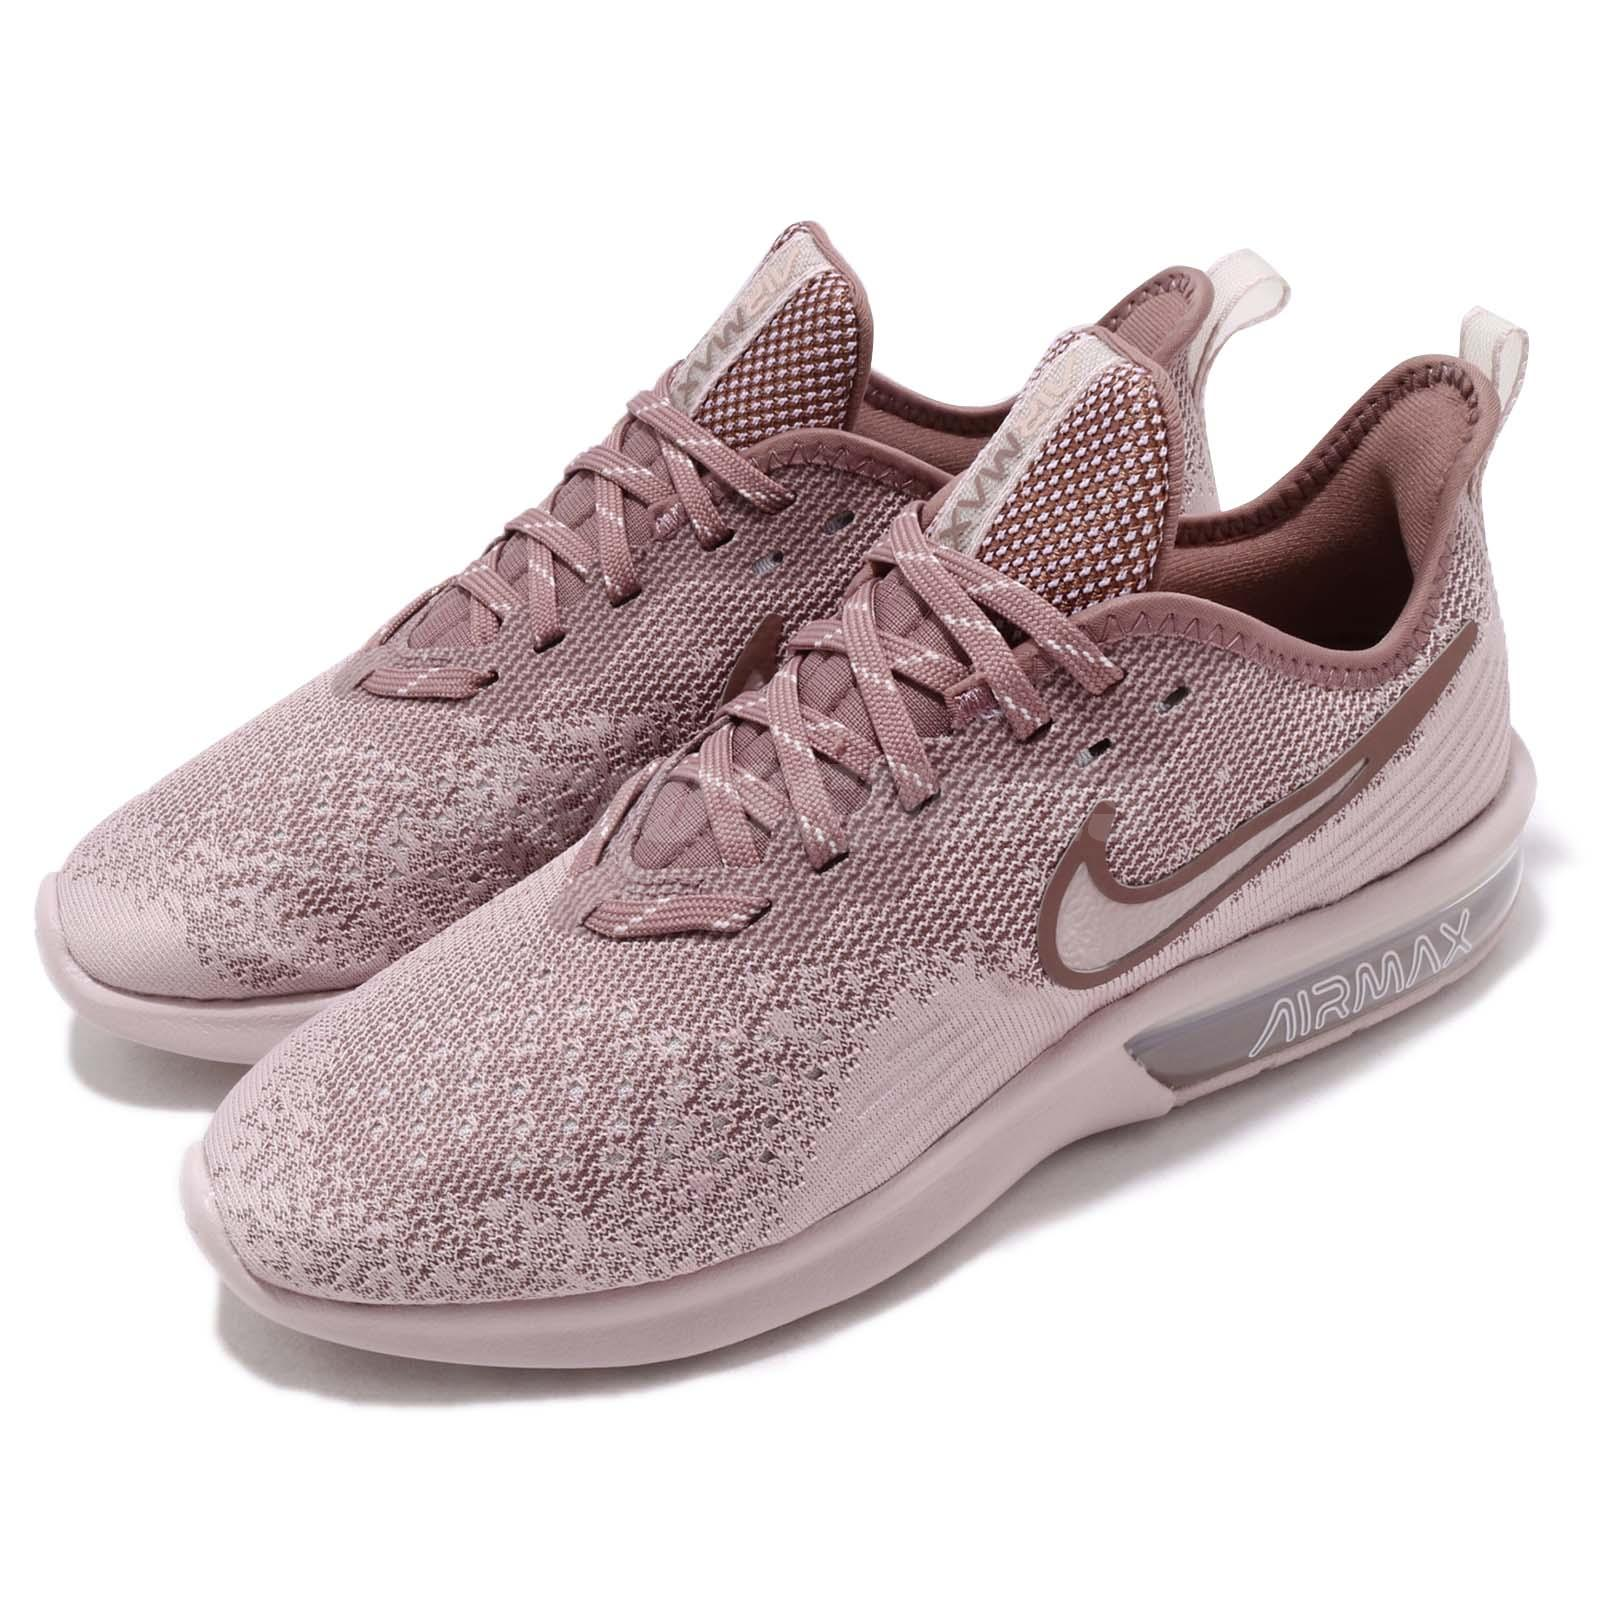 Details about Nike Wmns Air Max Sequent 4 IV Particle Rose Women Running Shoes AO4486 600